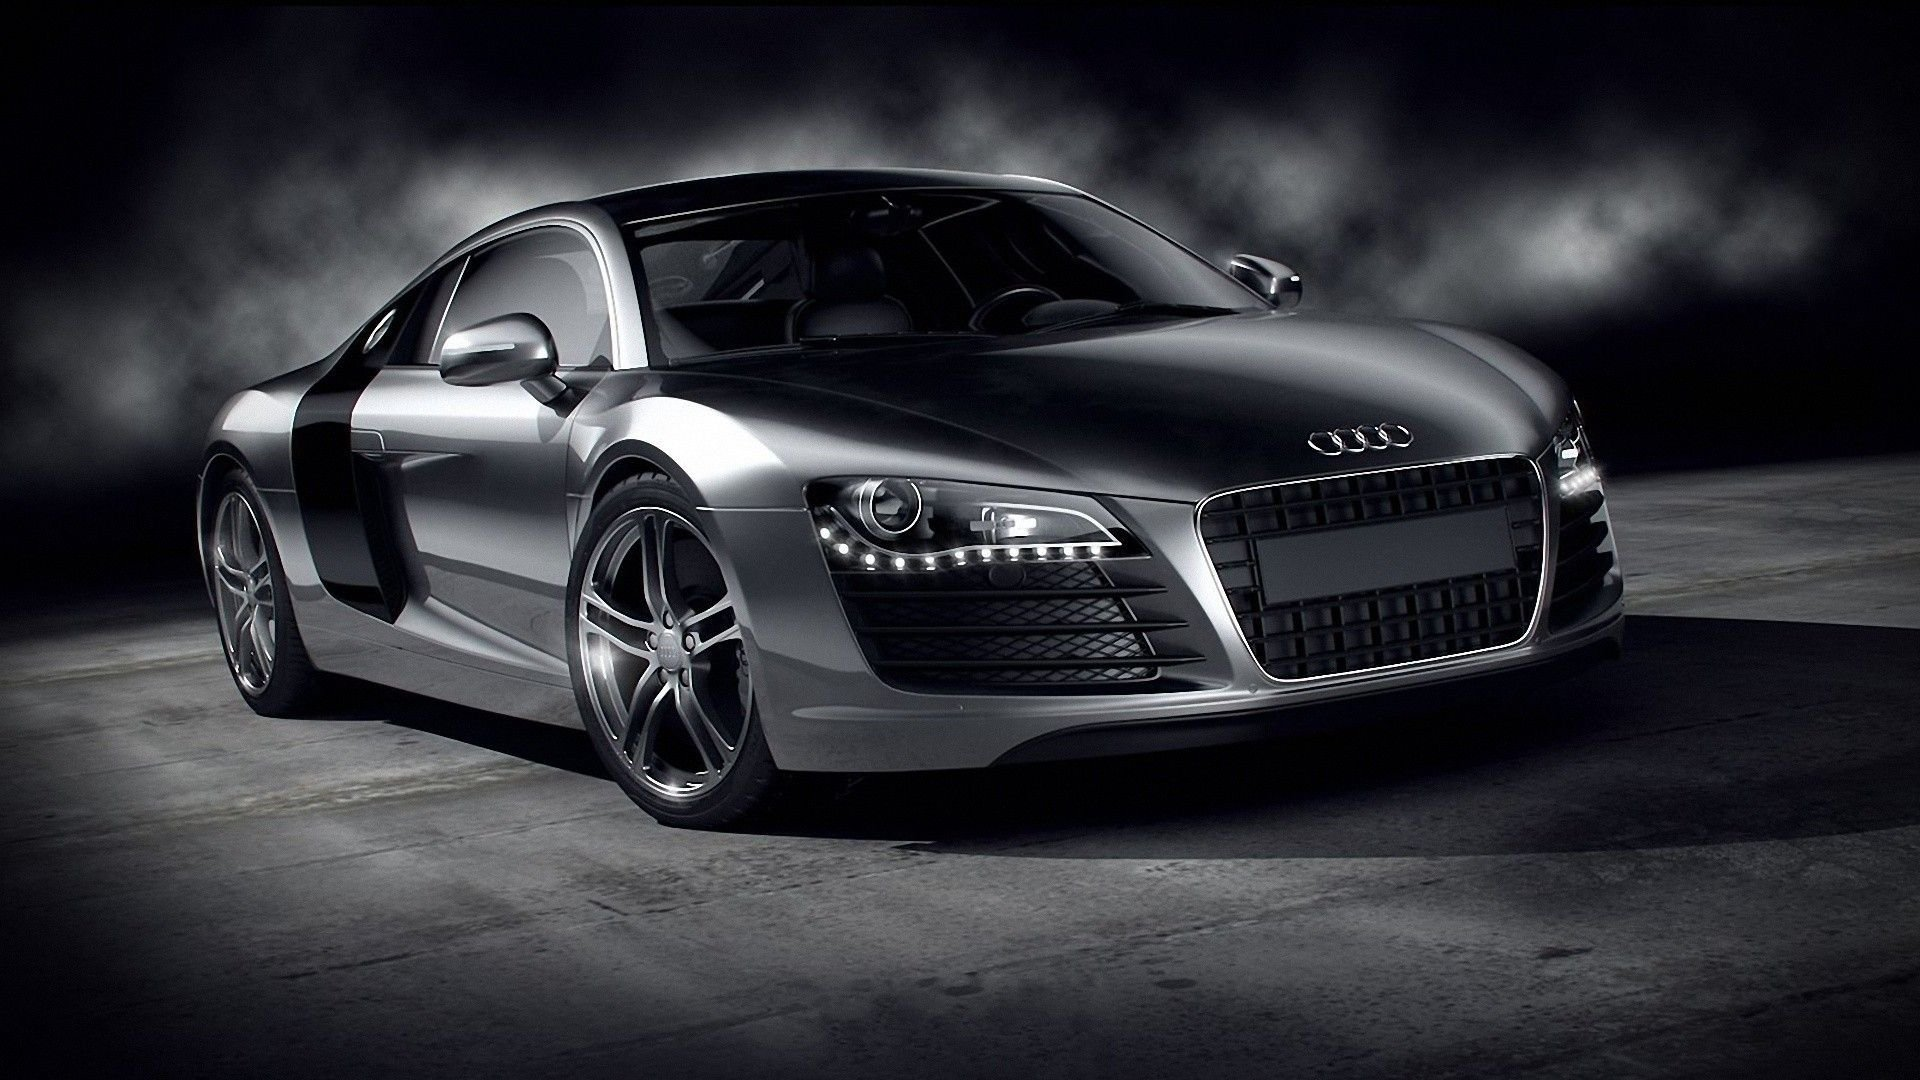 Latest Audi R8 Desktop Wallpaper Hd Car Wallpaper Proyectos Free Download